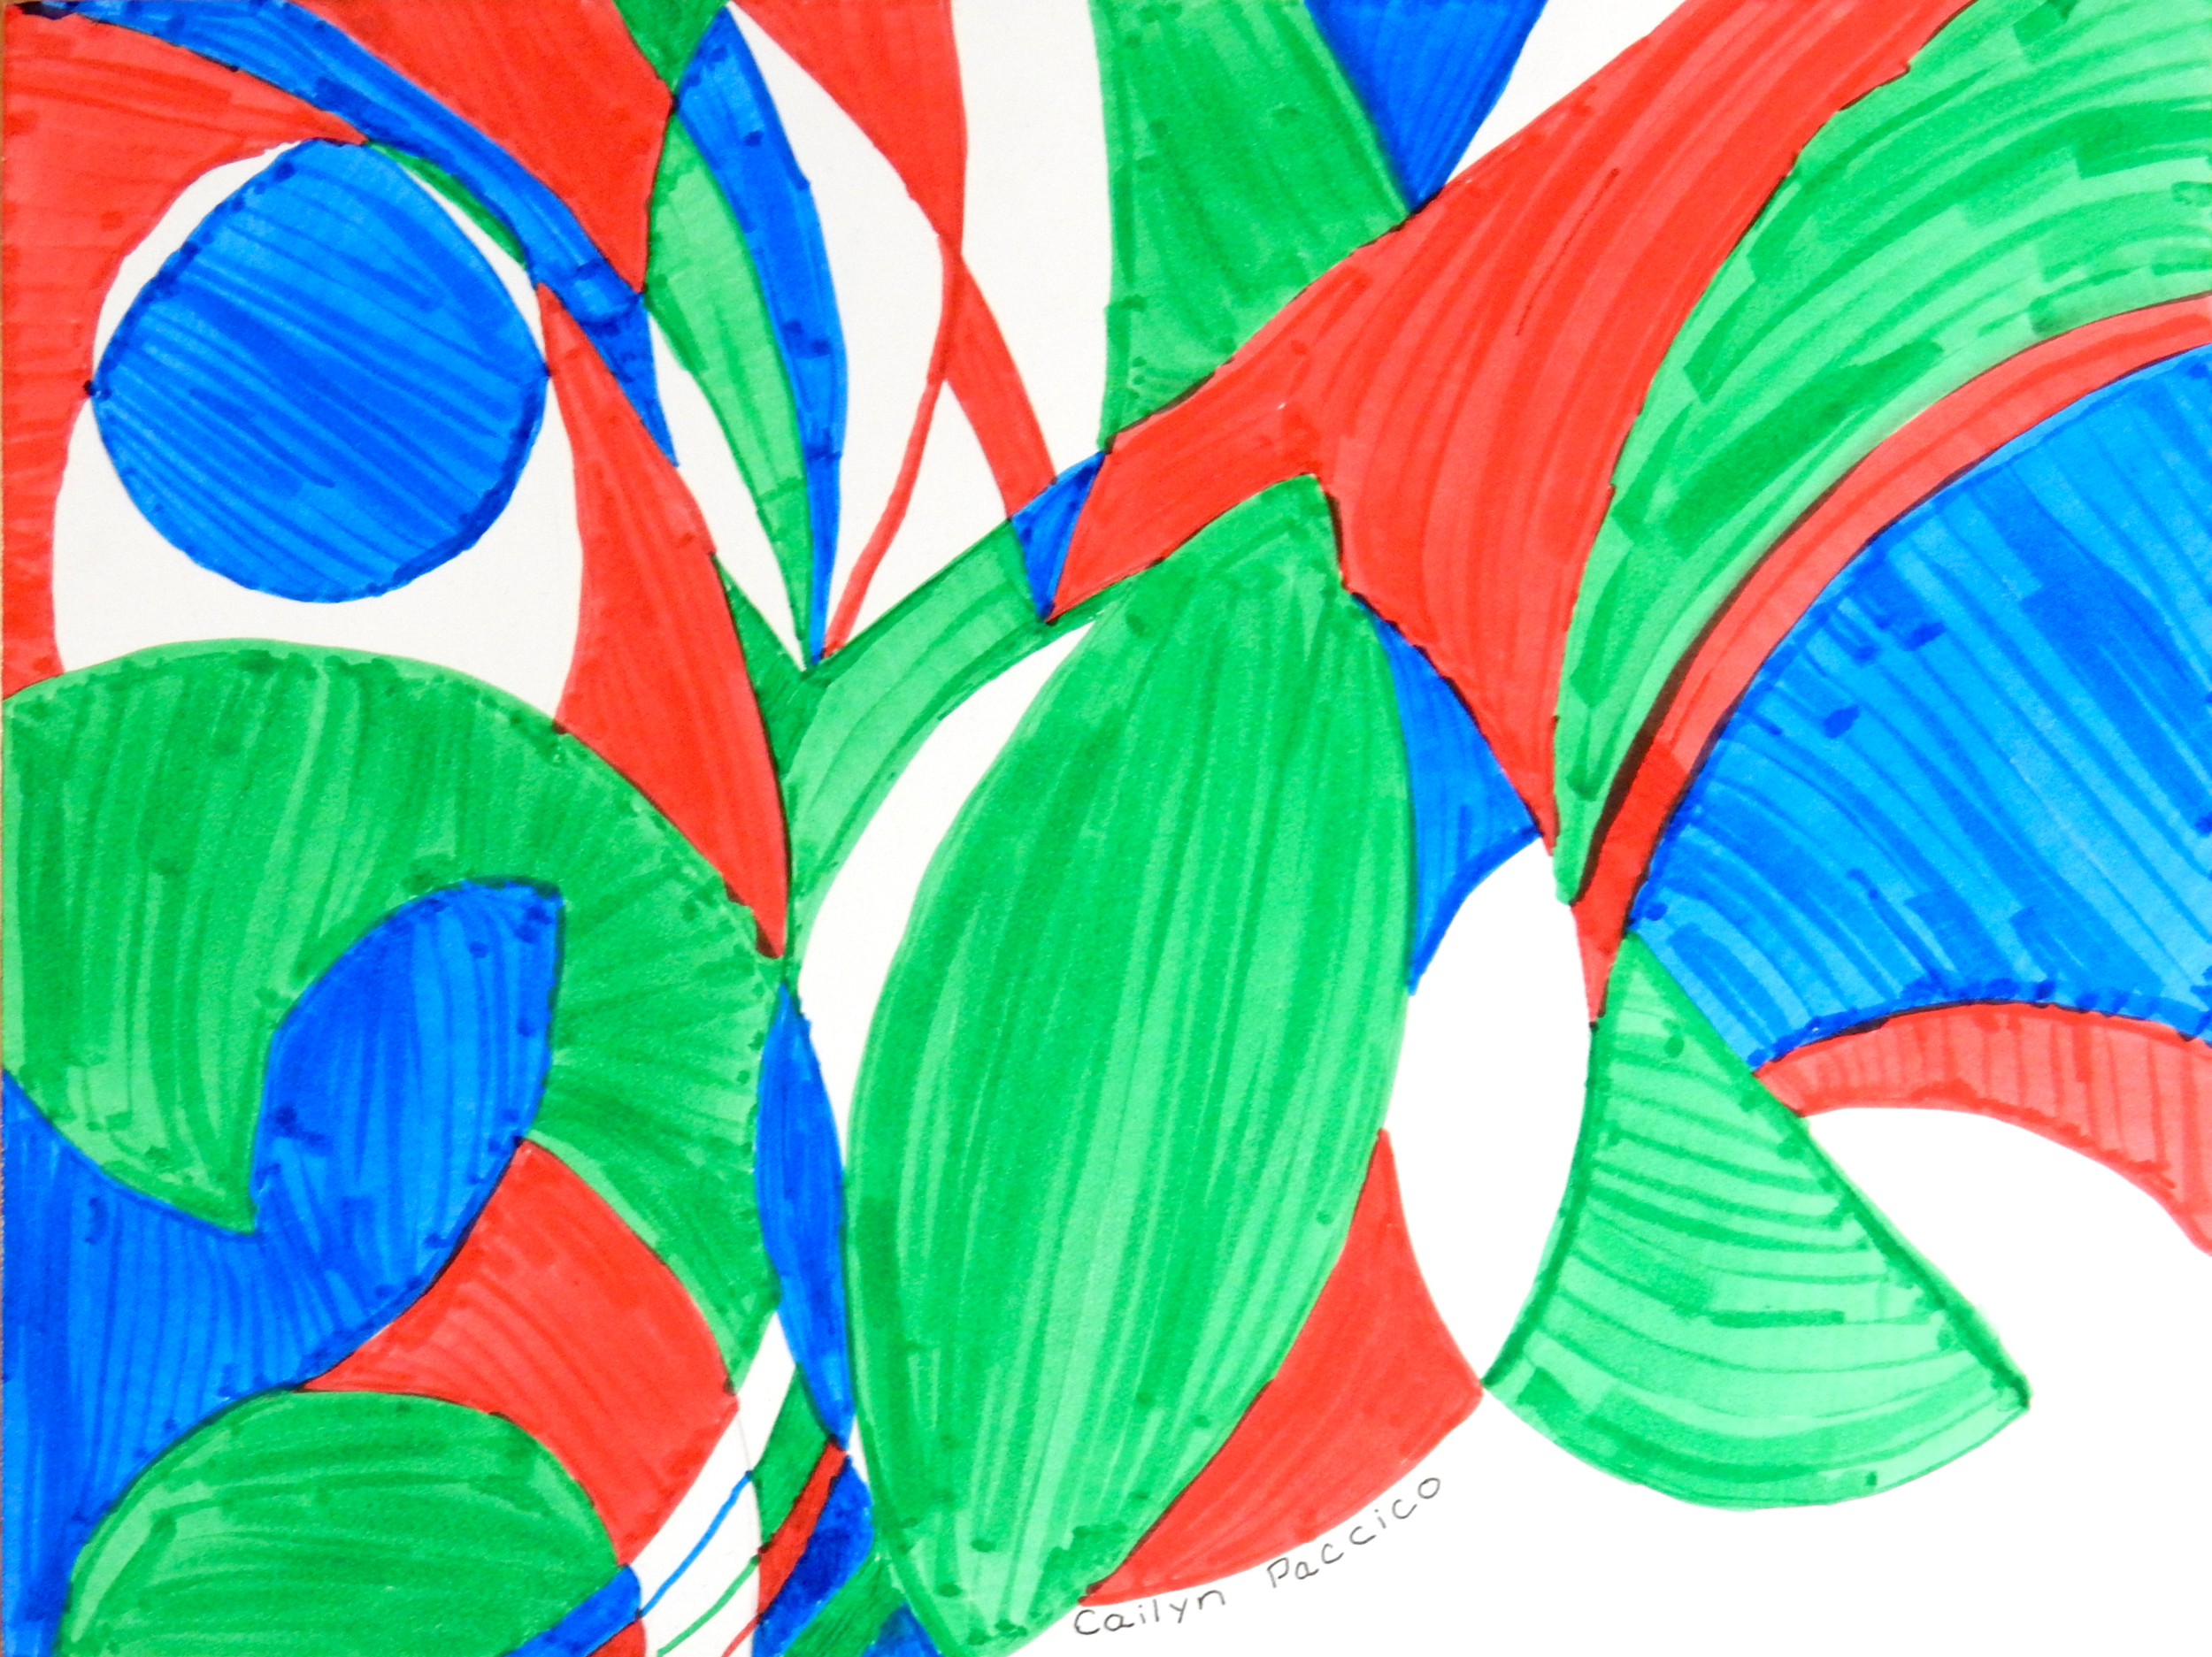 Cailyn Paccico.cirlcles.markers.2015